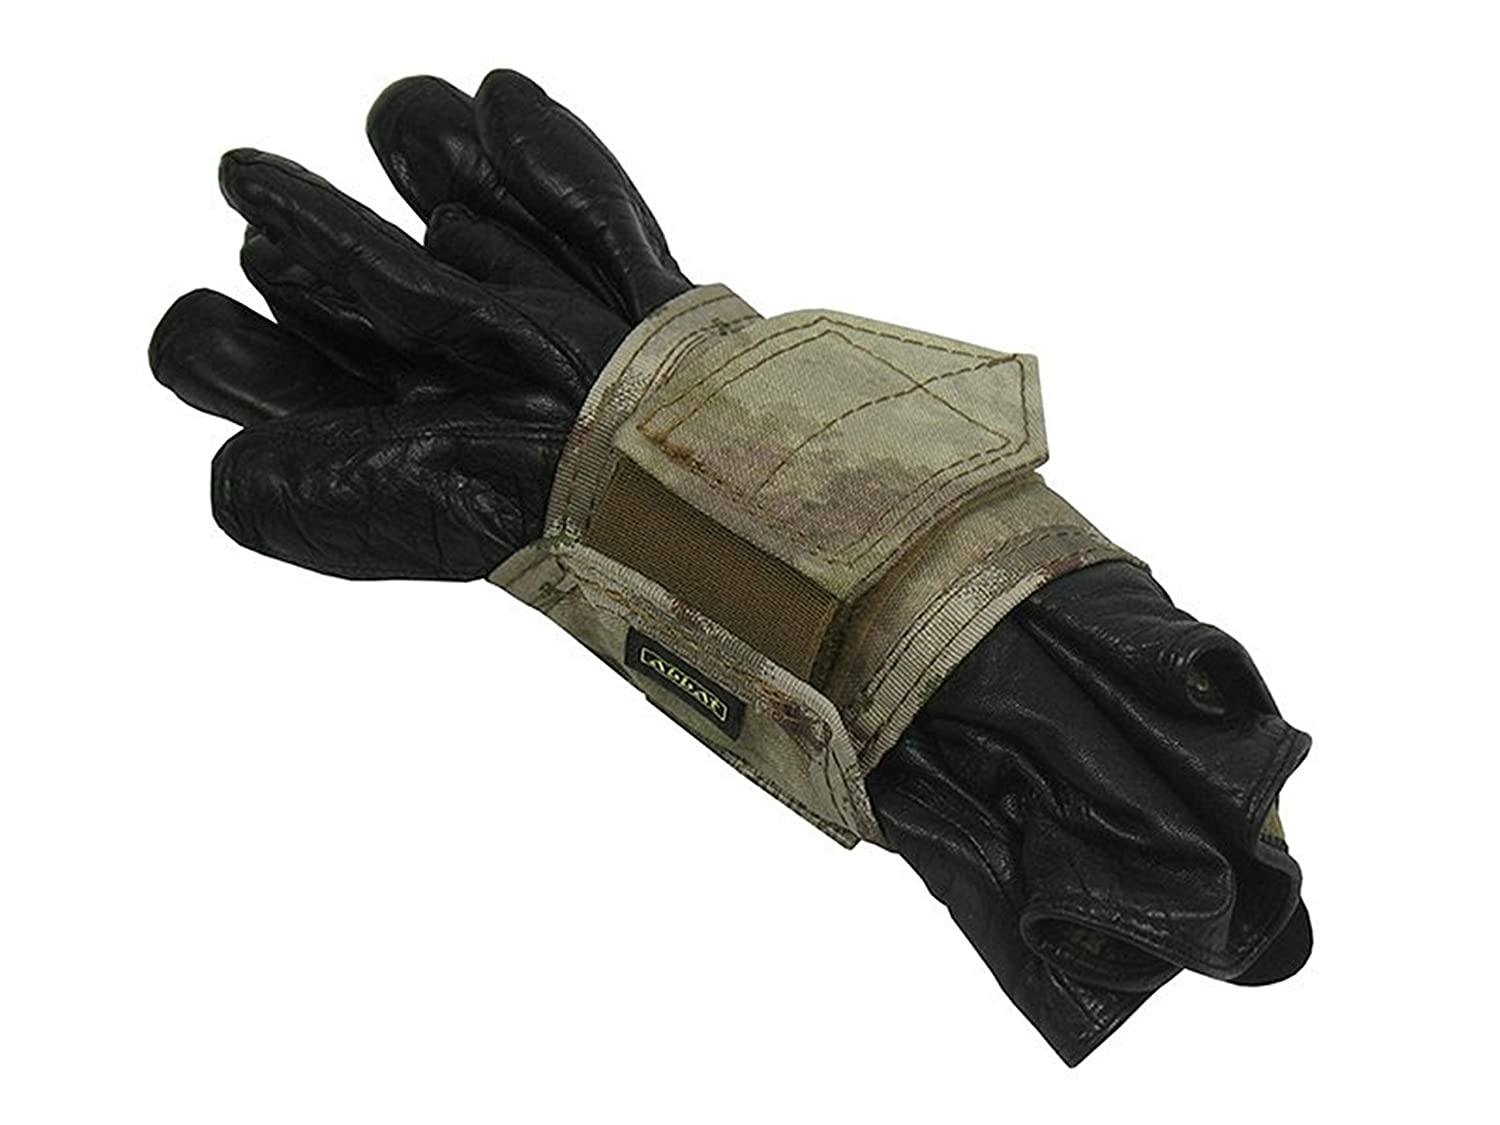 Tactic World Pochette Porte-Gant Pouch Glove Molle Airsoft Paintball Retainer